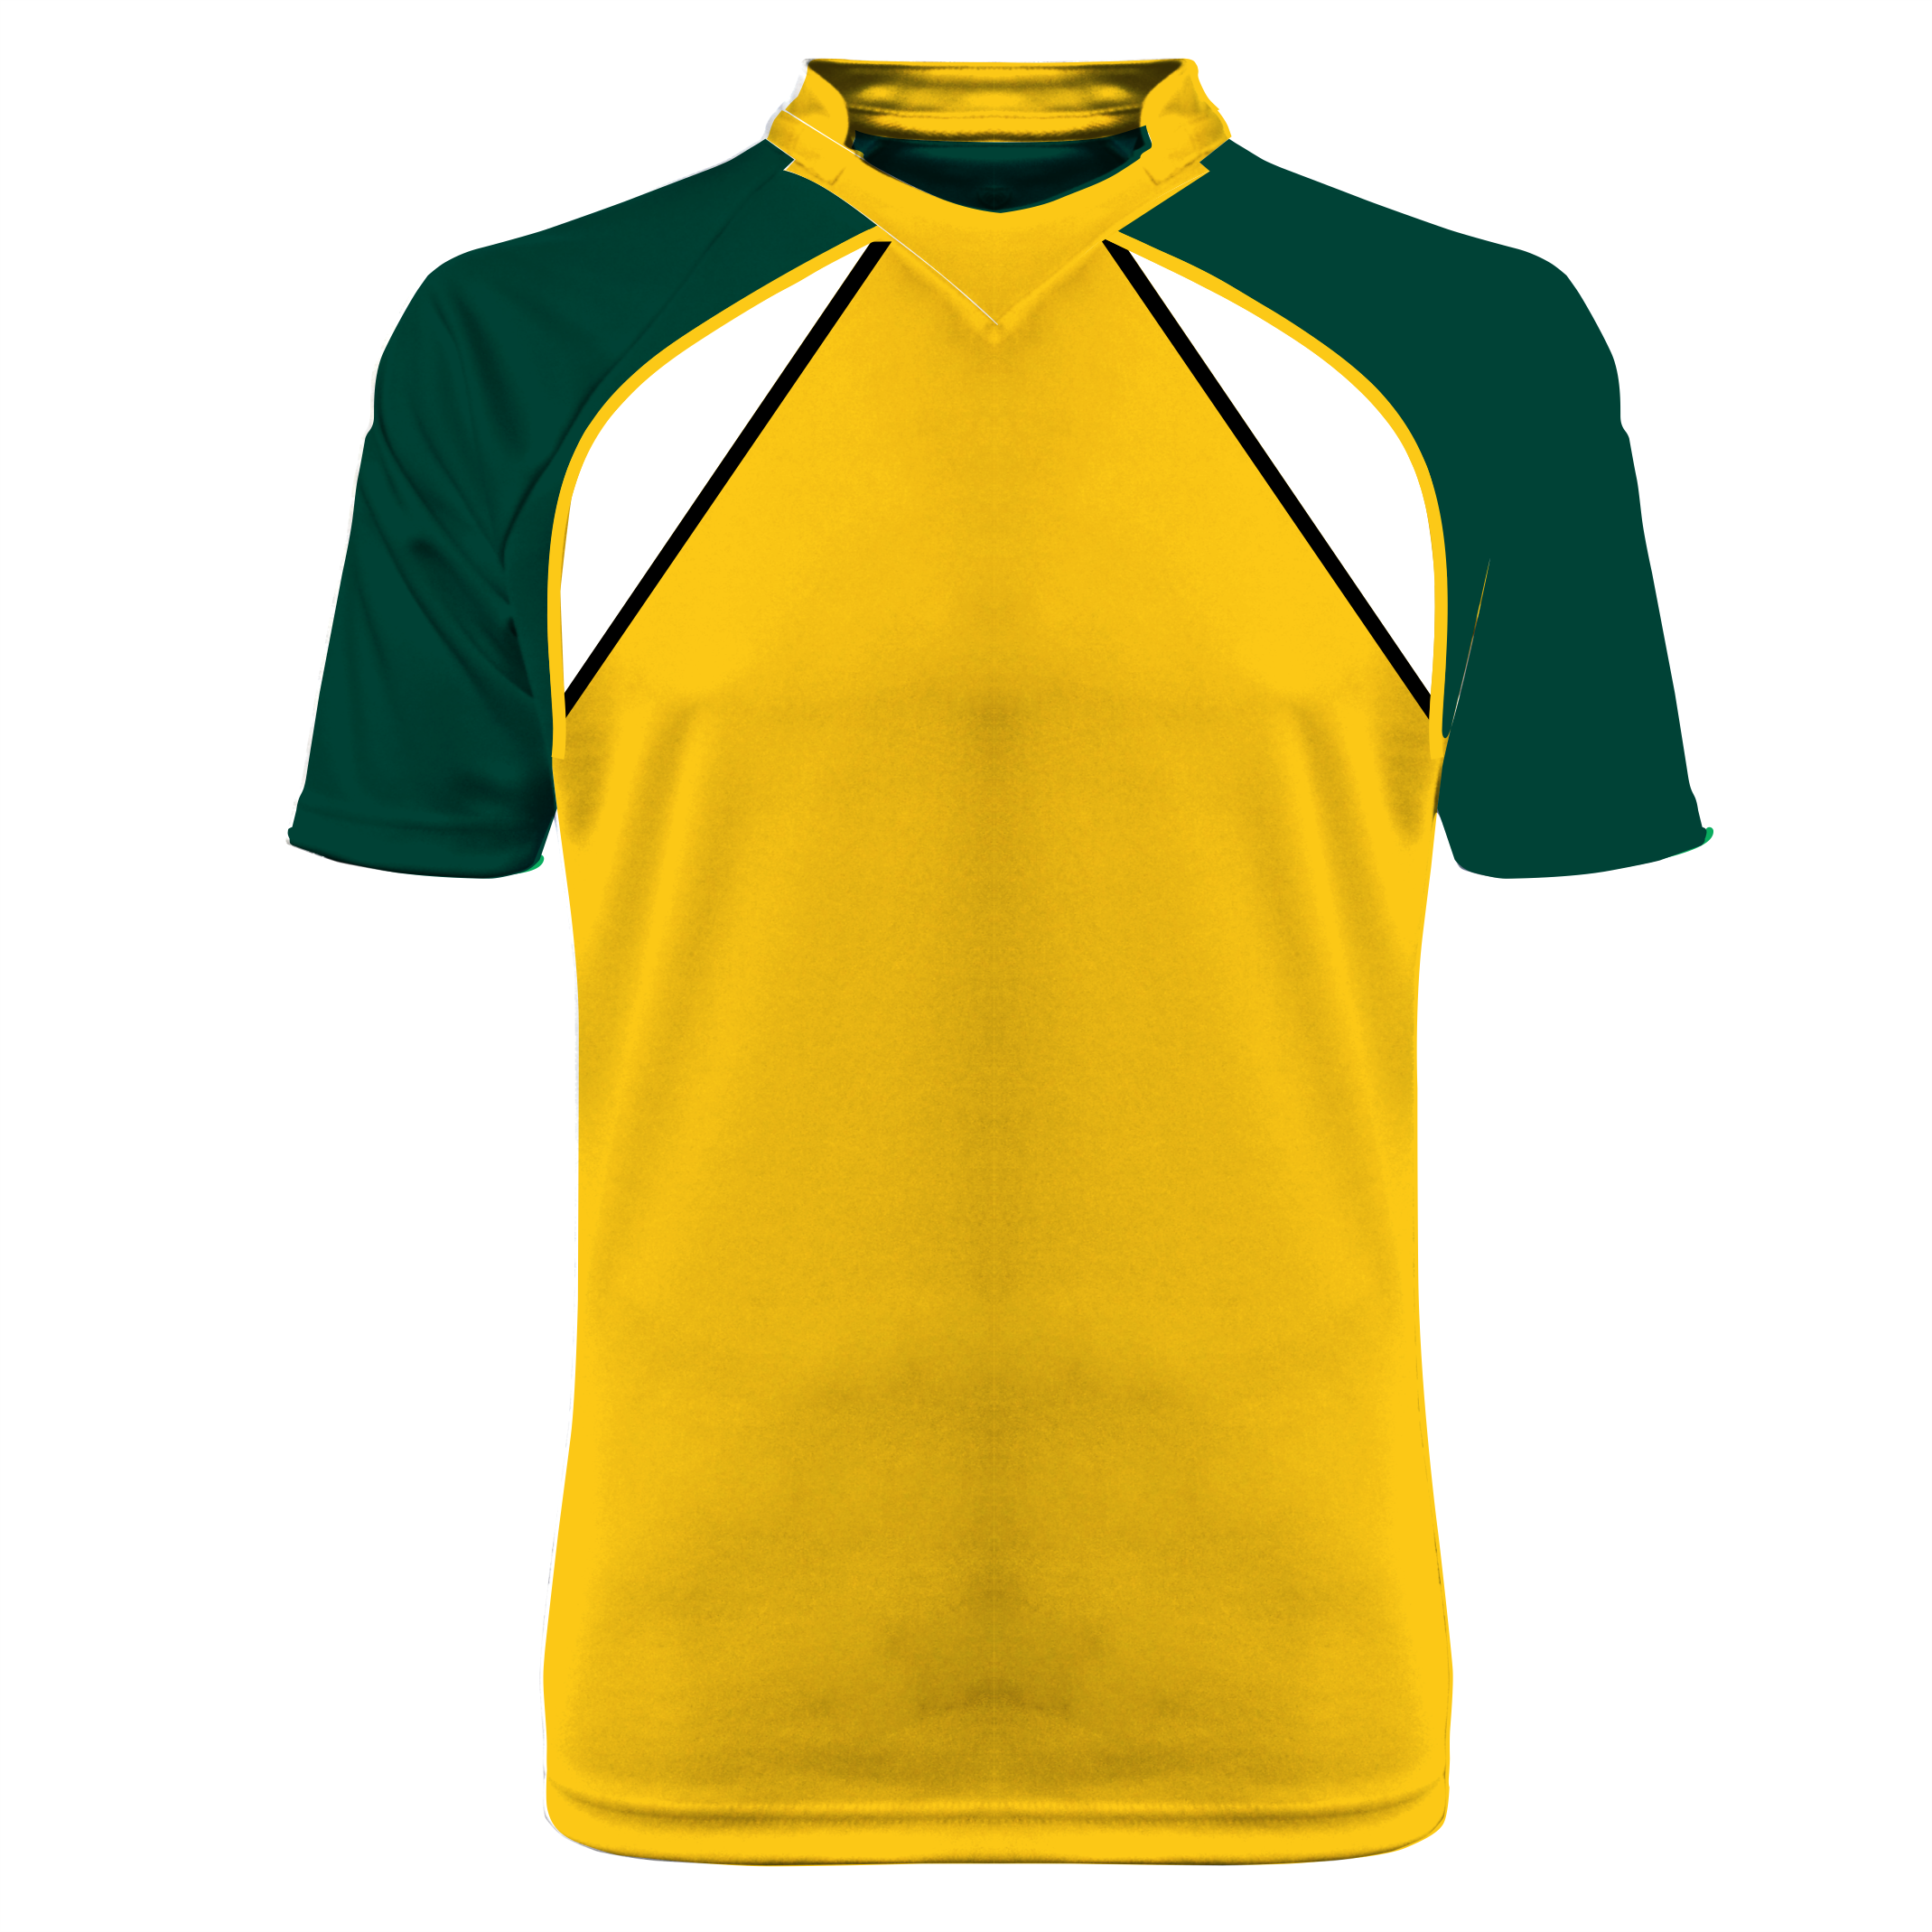 Panelled Zuco football shirt - Mick